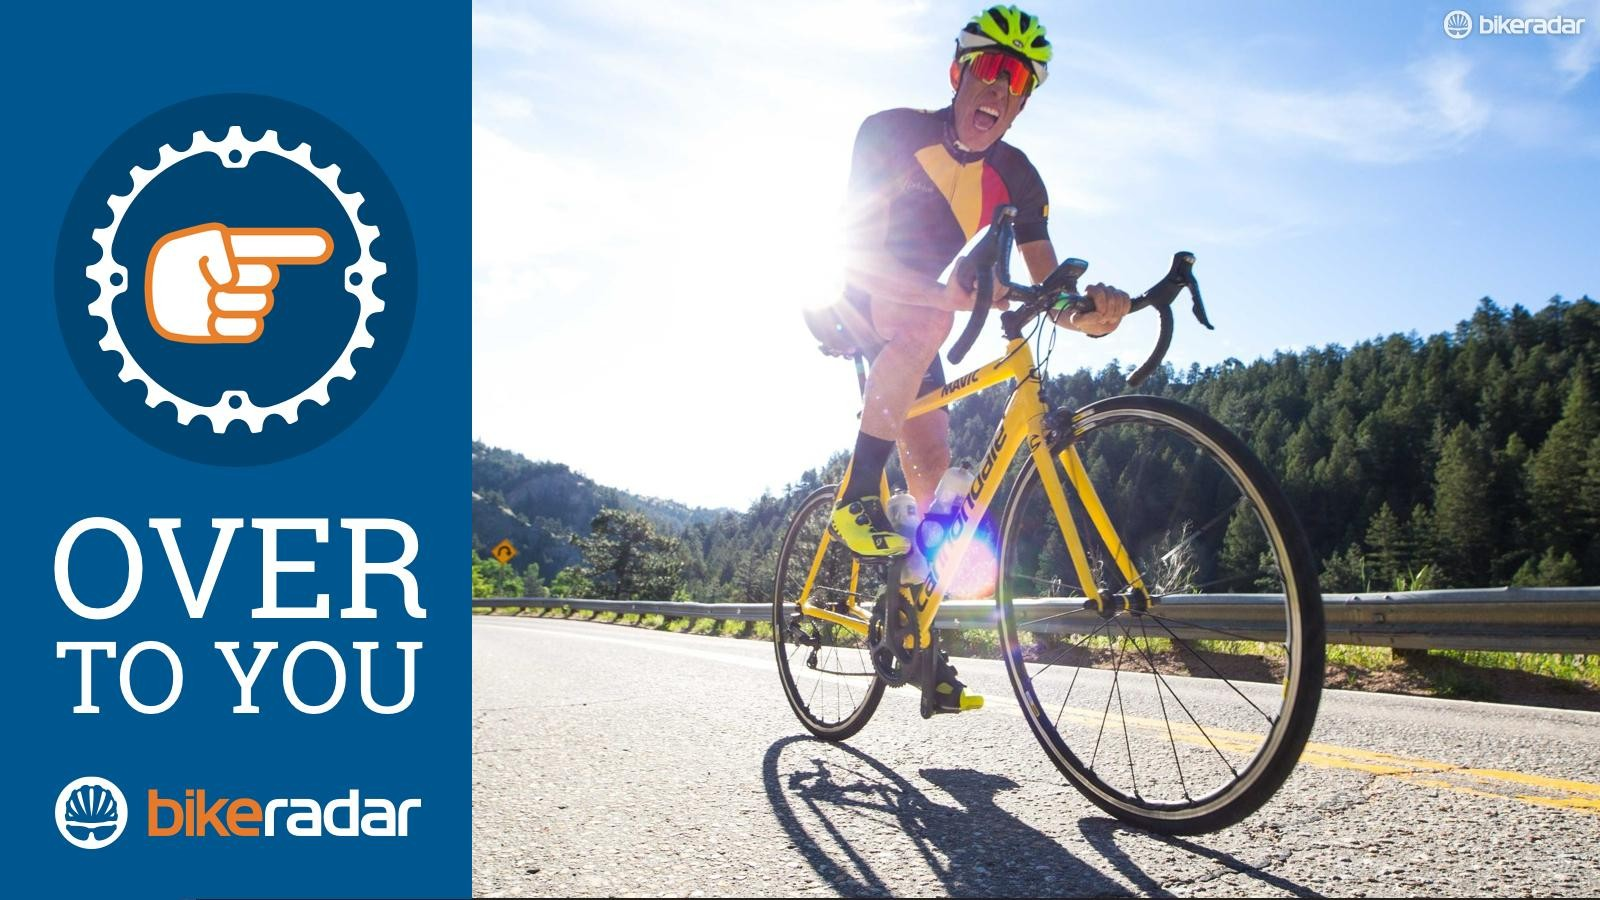 Over to you: Why do you ride?